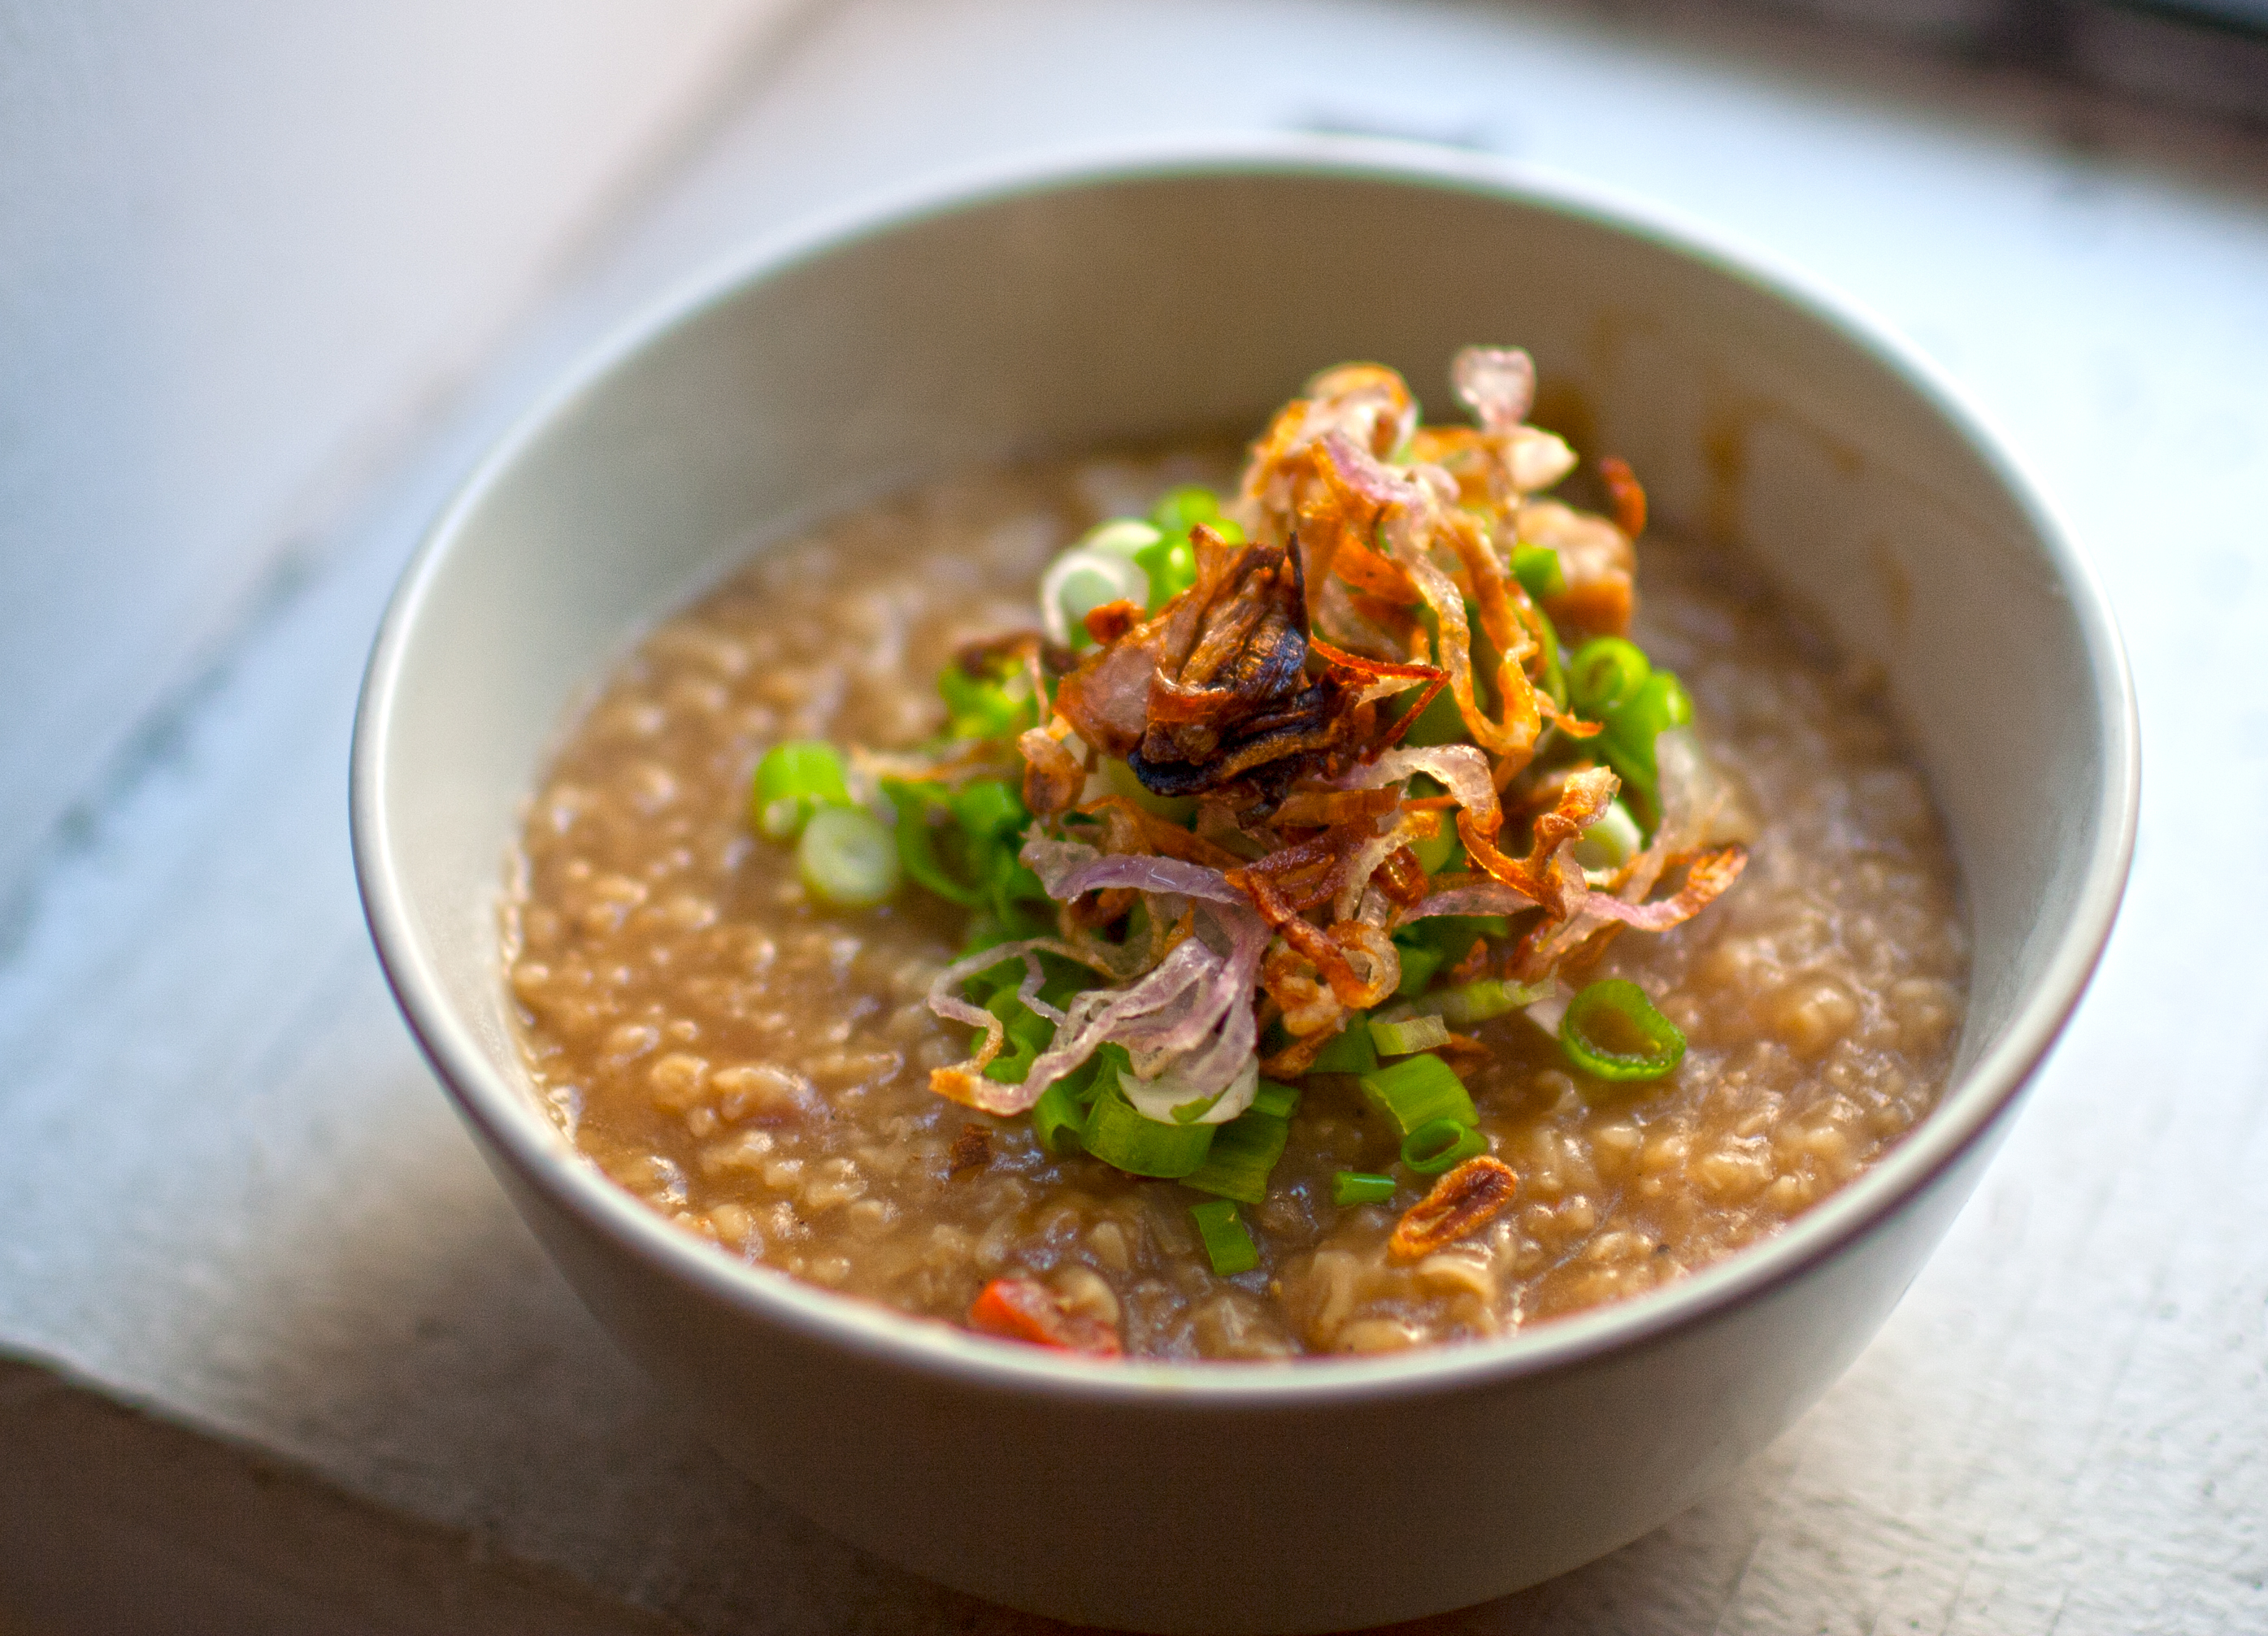 File:Congee 1a.jpg - Wikimedia Commons